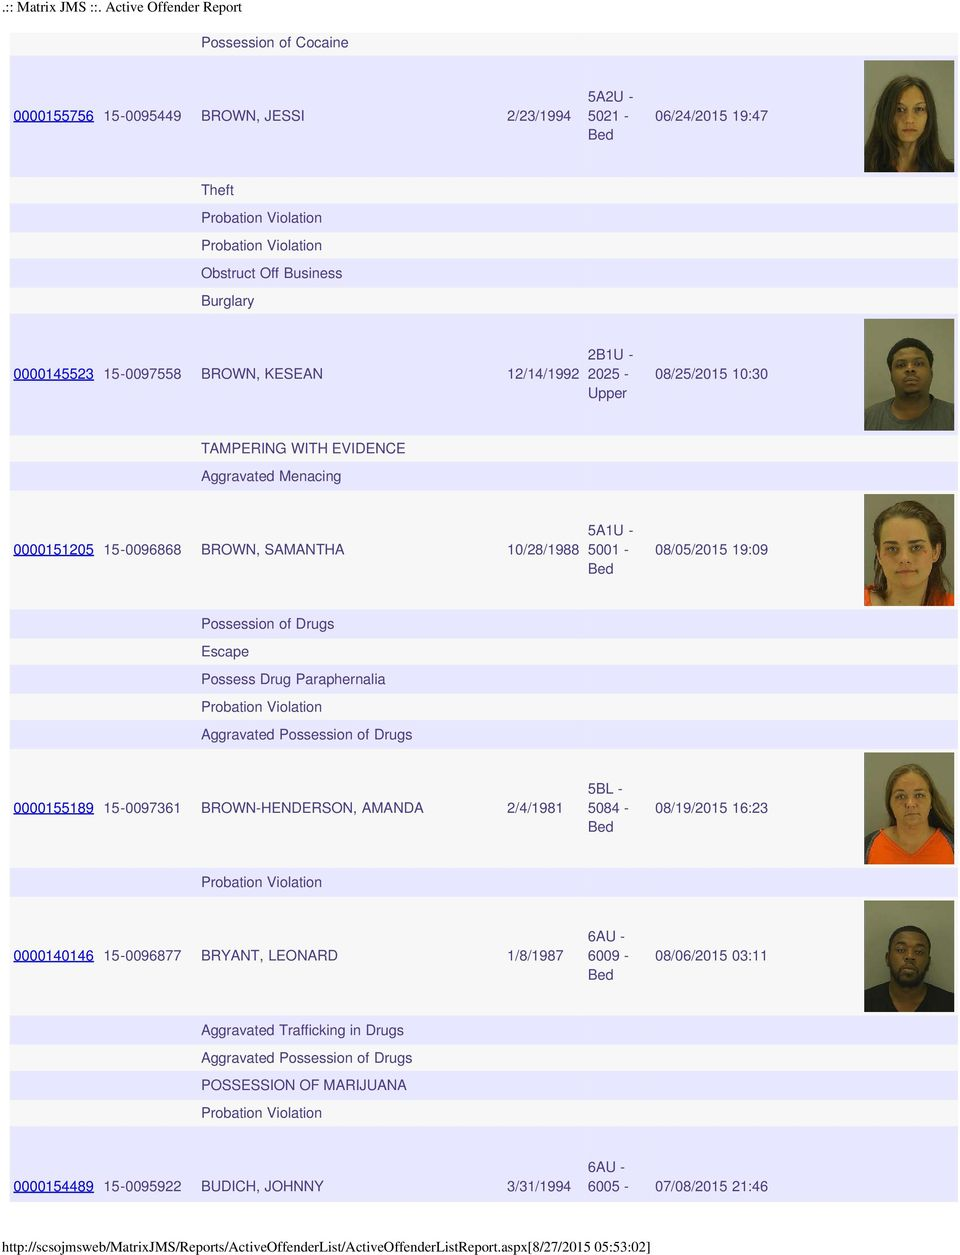 Drug Paraphernalia Aggravated Possession of Drugs 0000155189 15-0097361 BROWN-HENDERSON, AMANDA 2/4/1981 5BL - 5084-08/19/2015 16:23 0000140146 15-0096877 BRYANT, LEONARD 1/8/1987